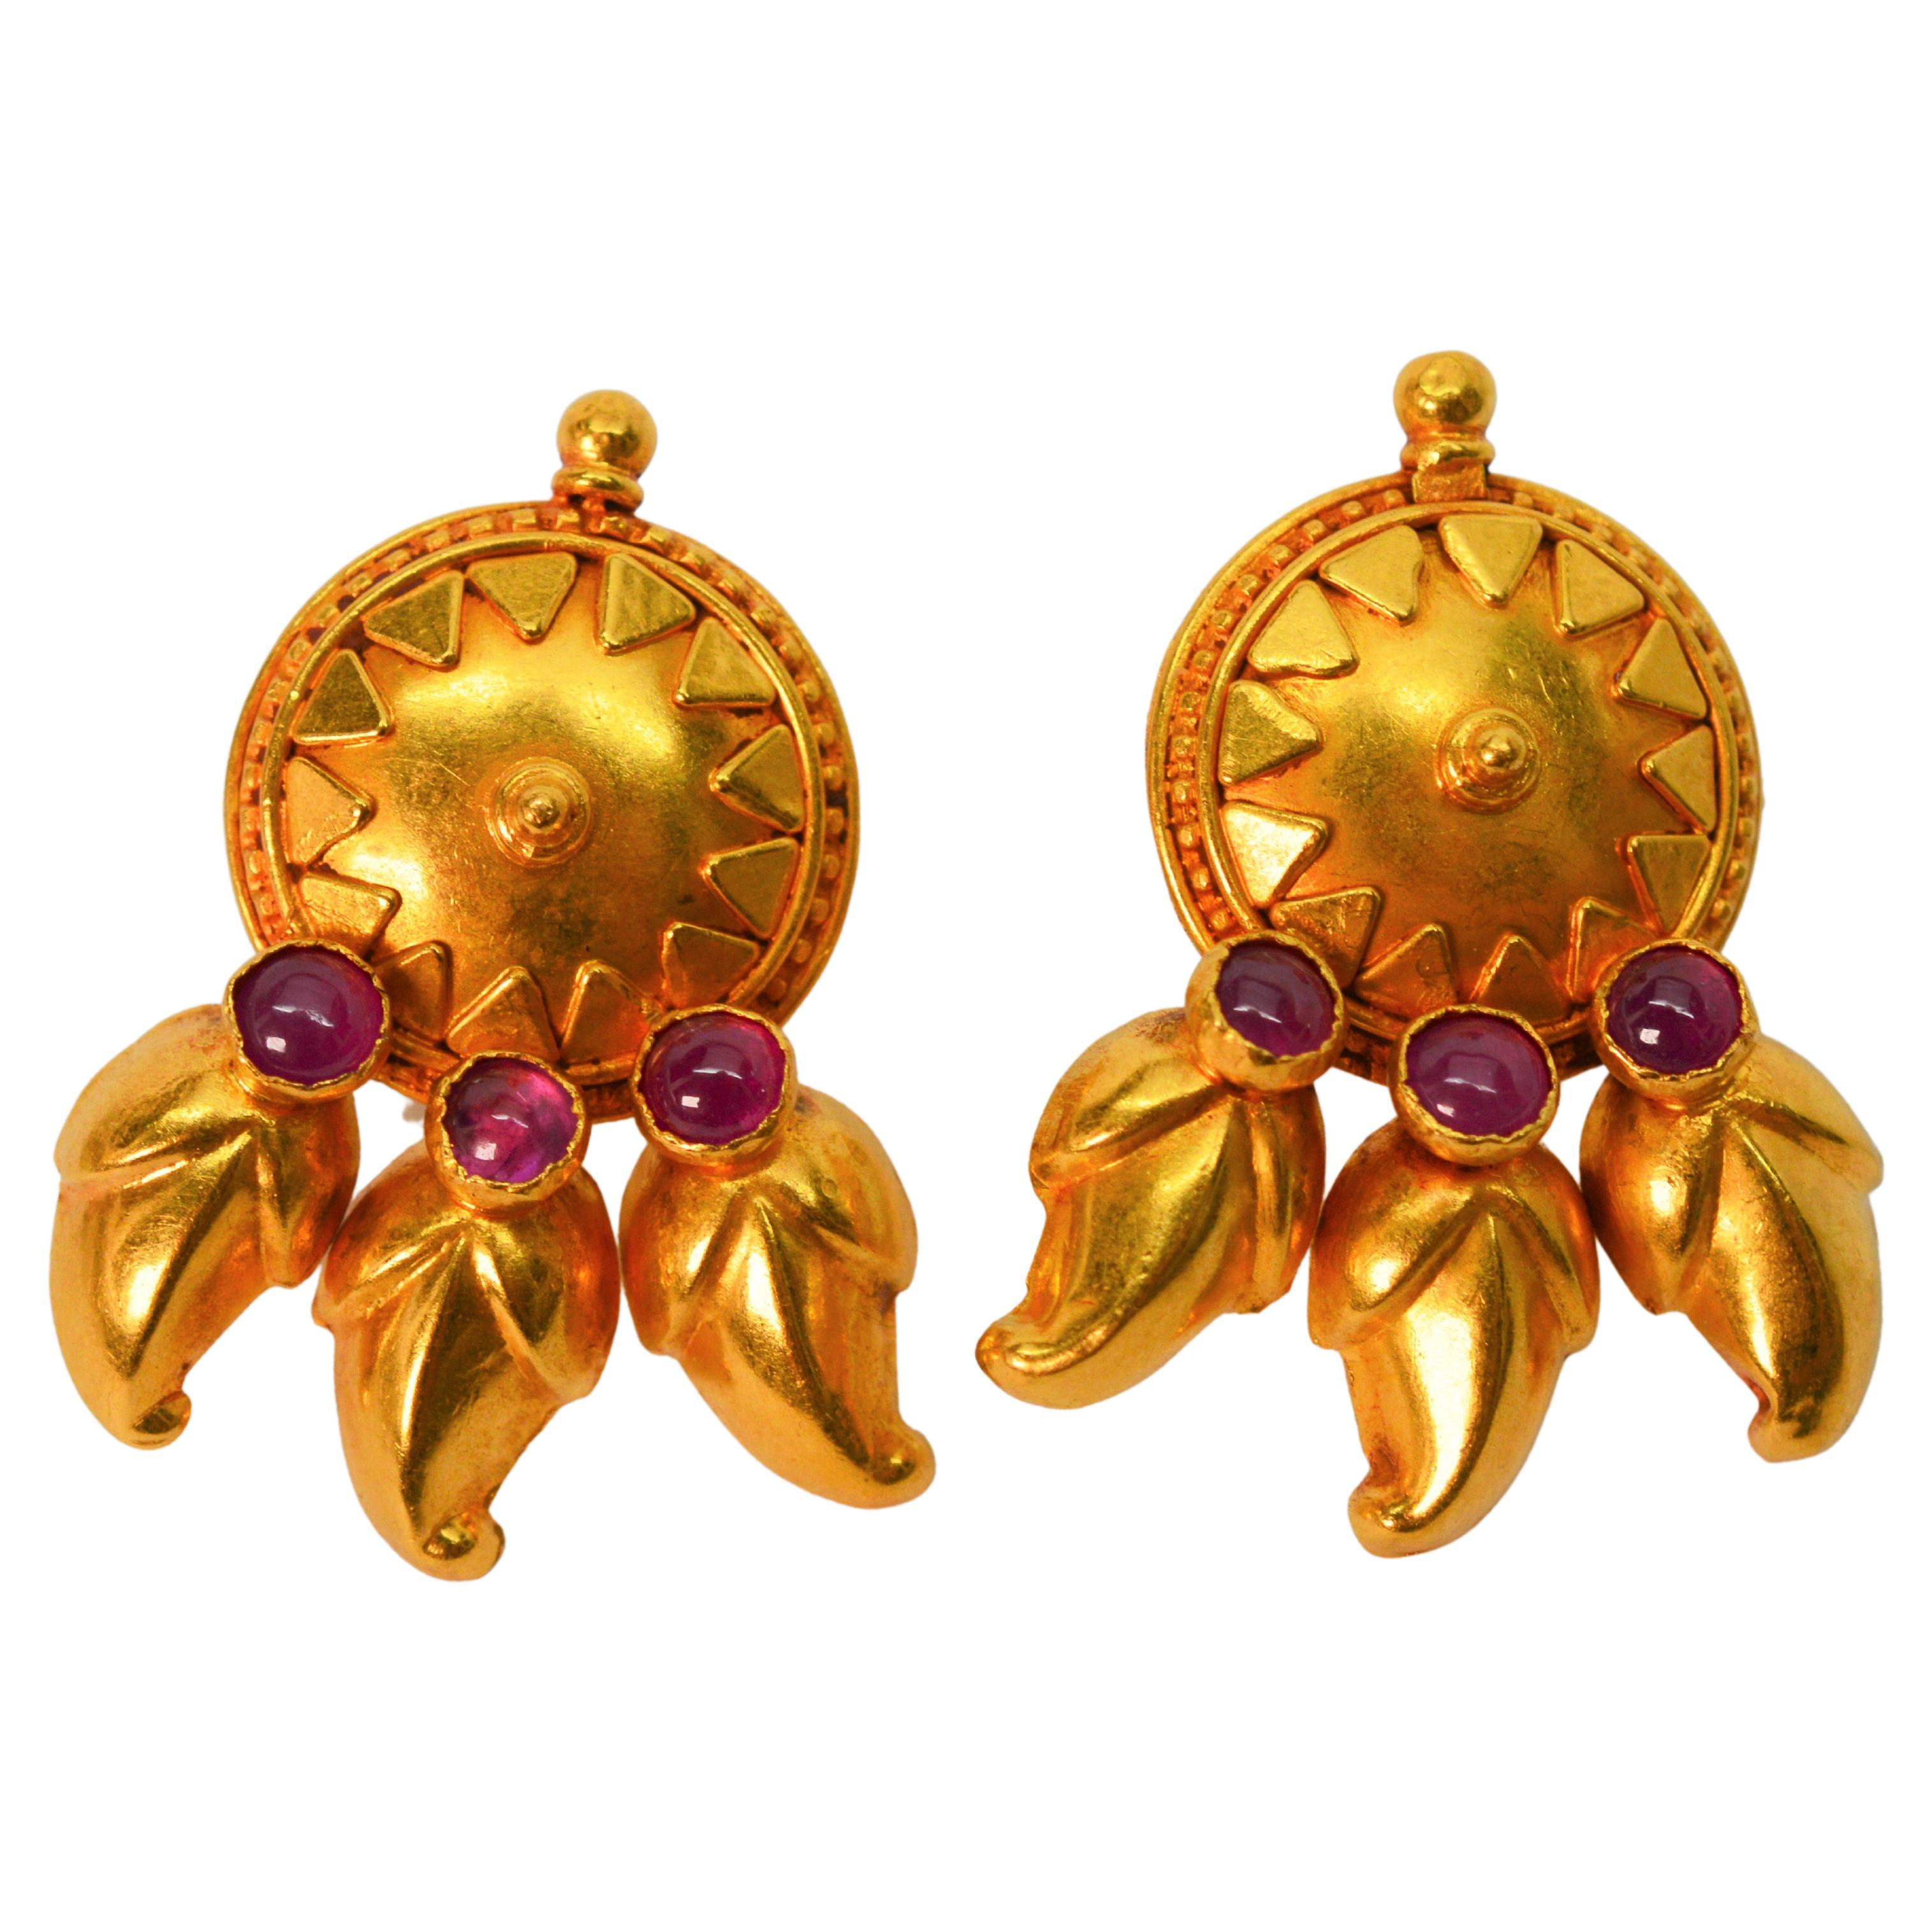 Satin 22 Karat Yellow Gold Medallion Stud Earrings w Ruby Cabochon Accents